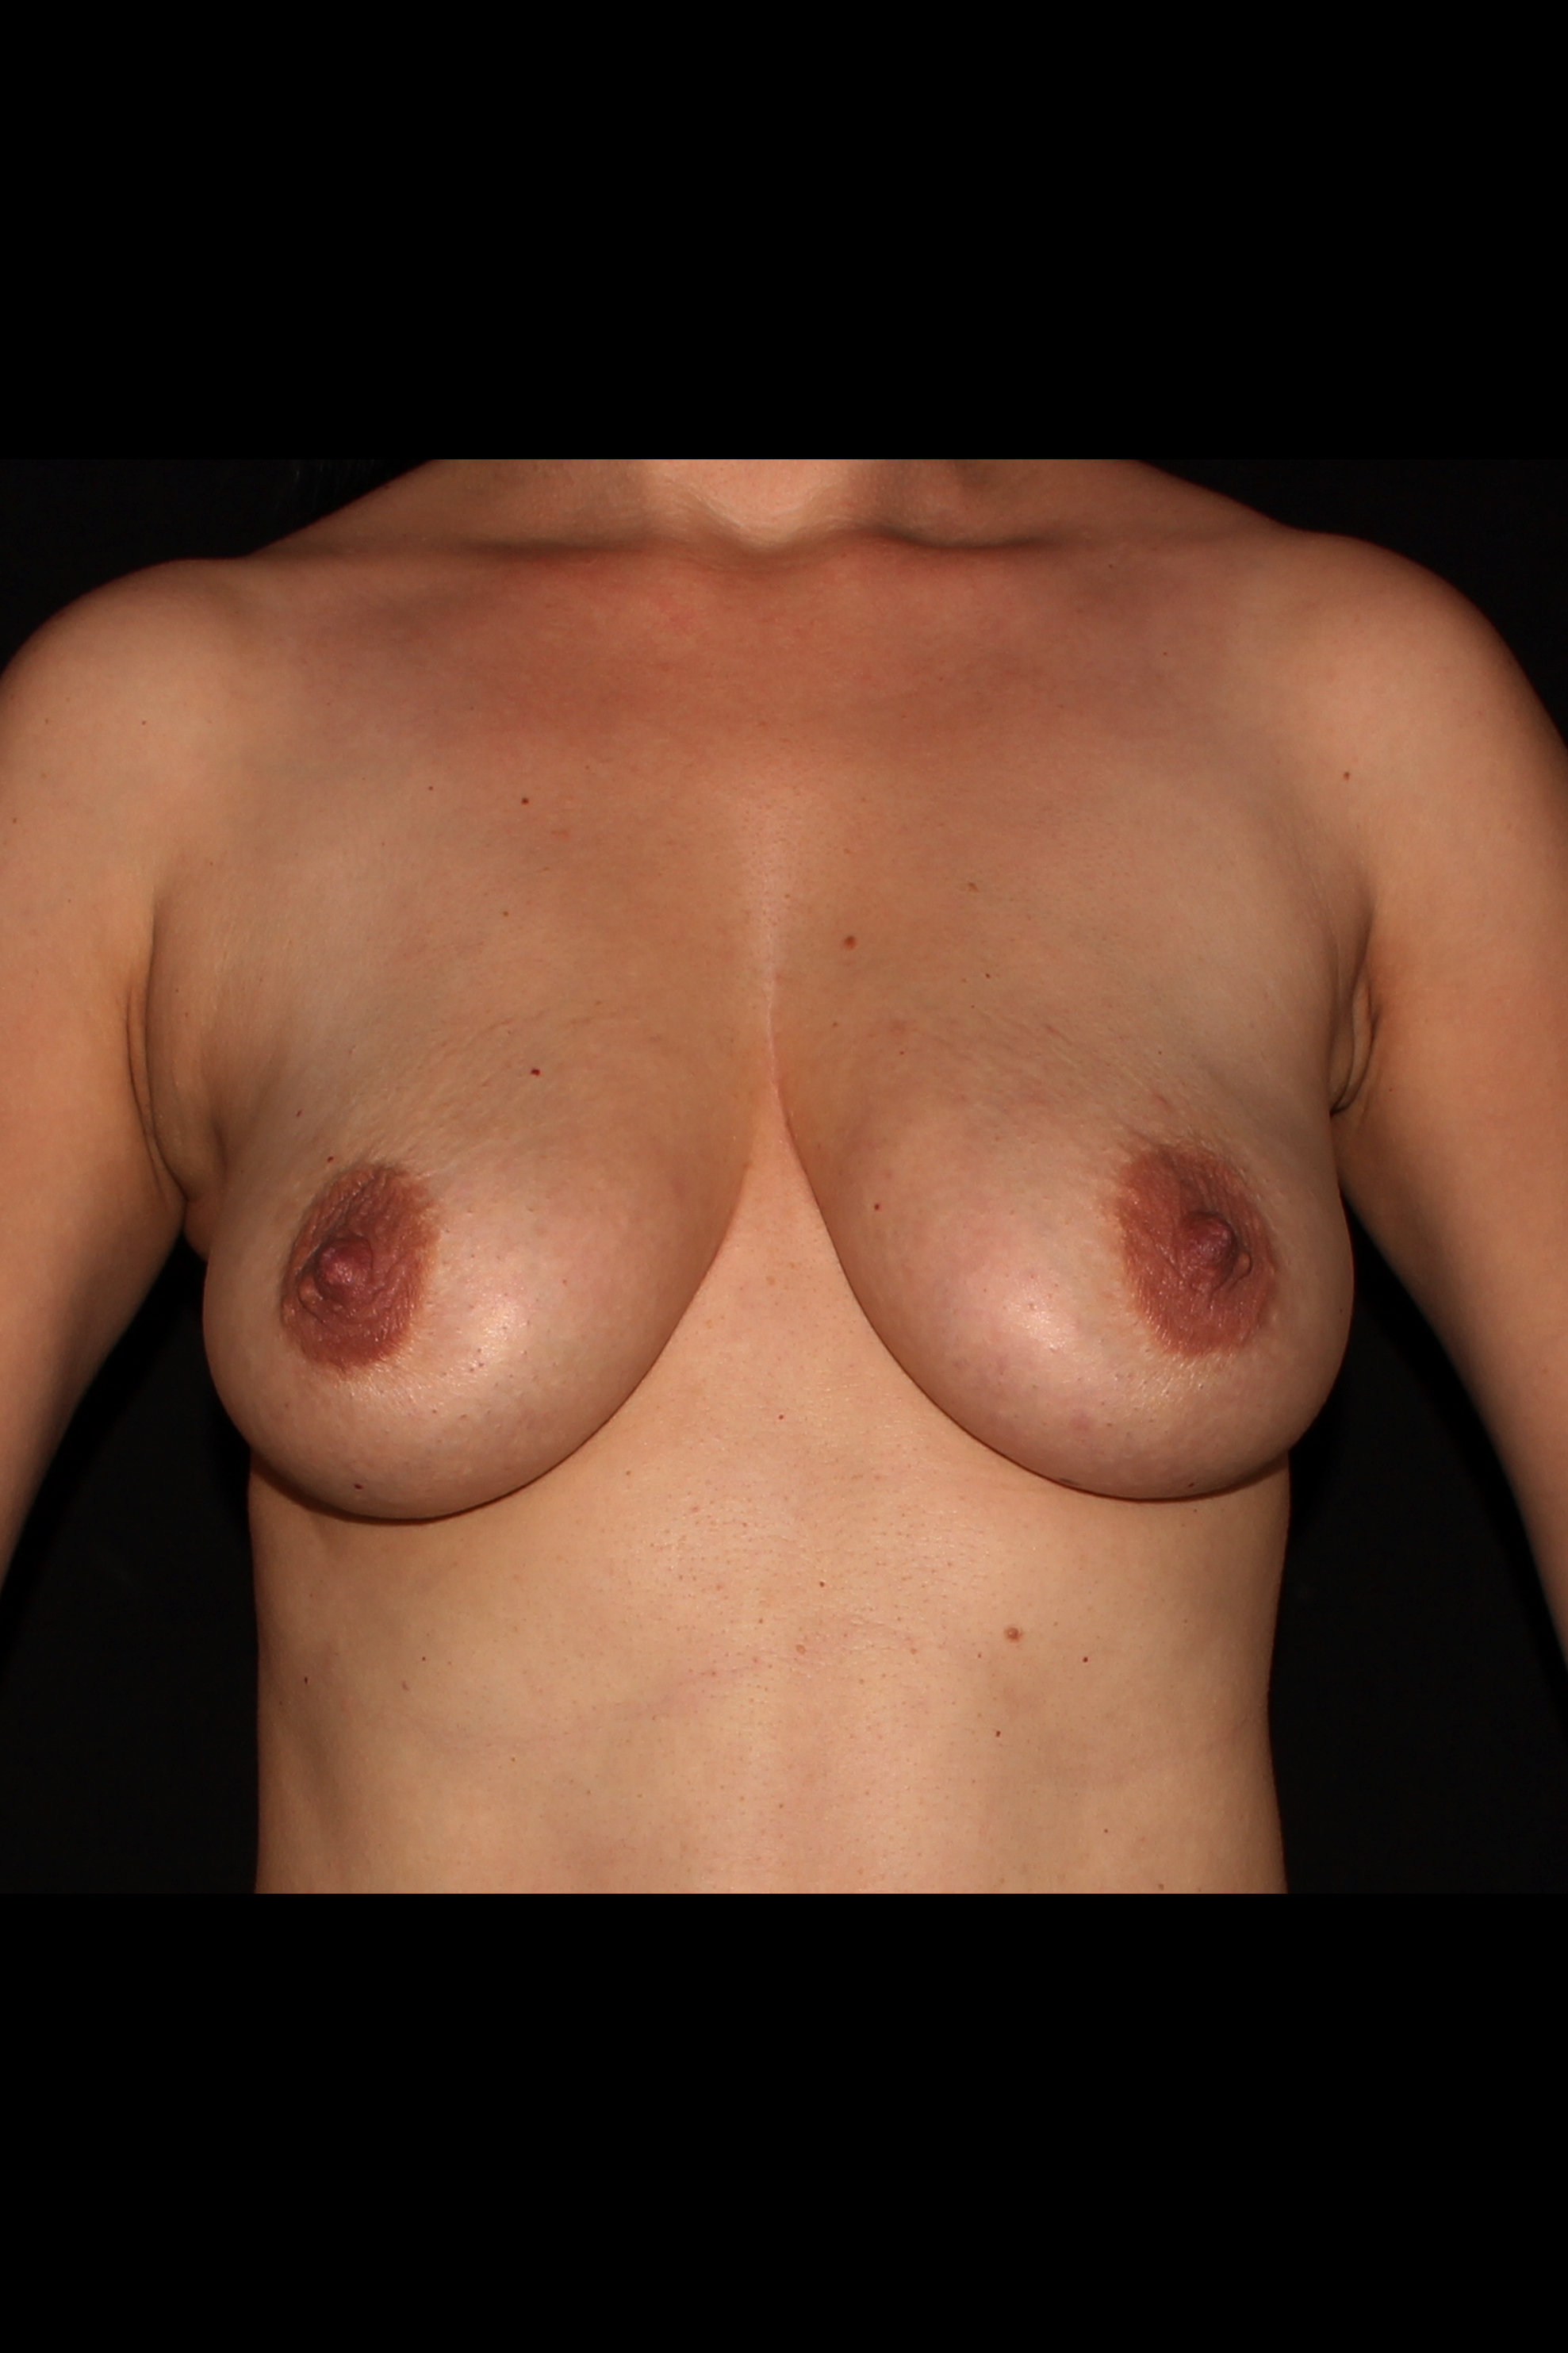 After Fat Transfer to Breast - Breast Augmentation with Fat Transfer